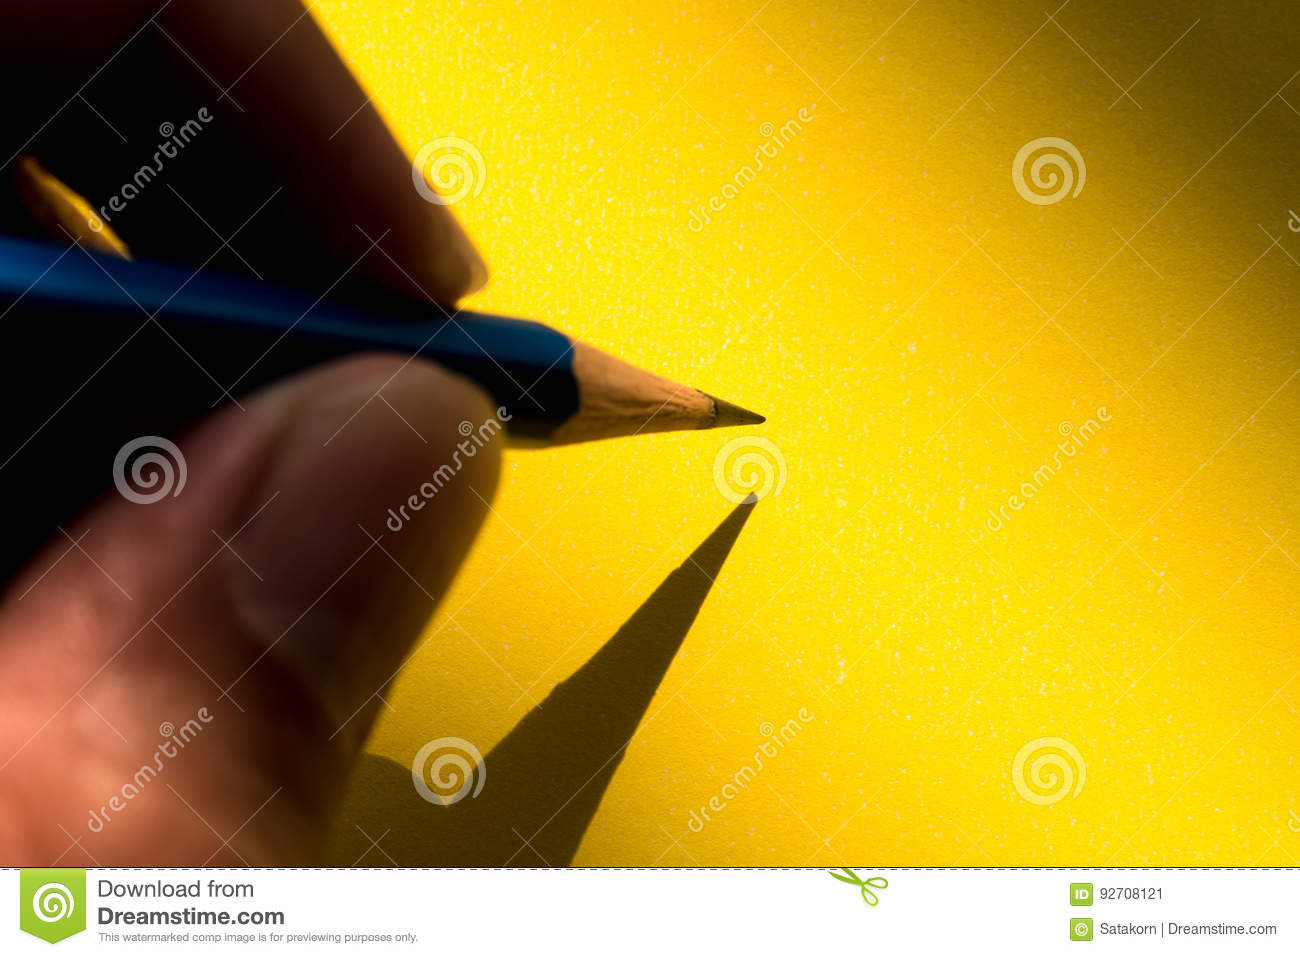 Download Hand Holding Pencil To Write On The Paper In Shadow Stock Image - Image of finger, human: 92708121